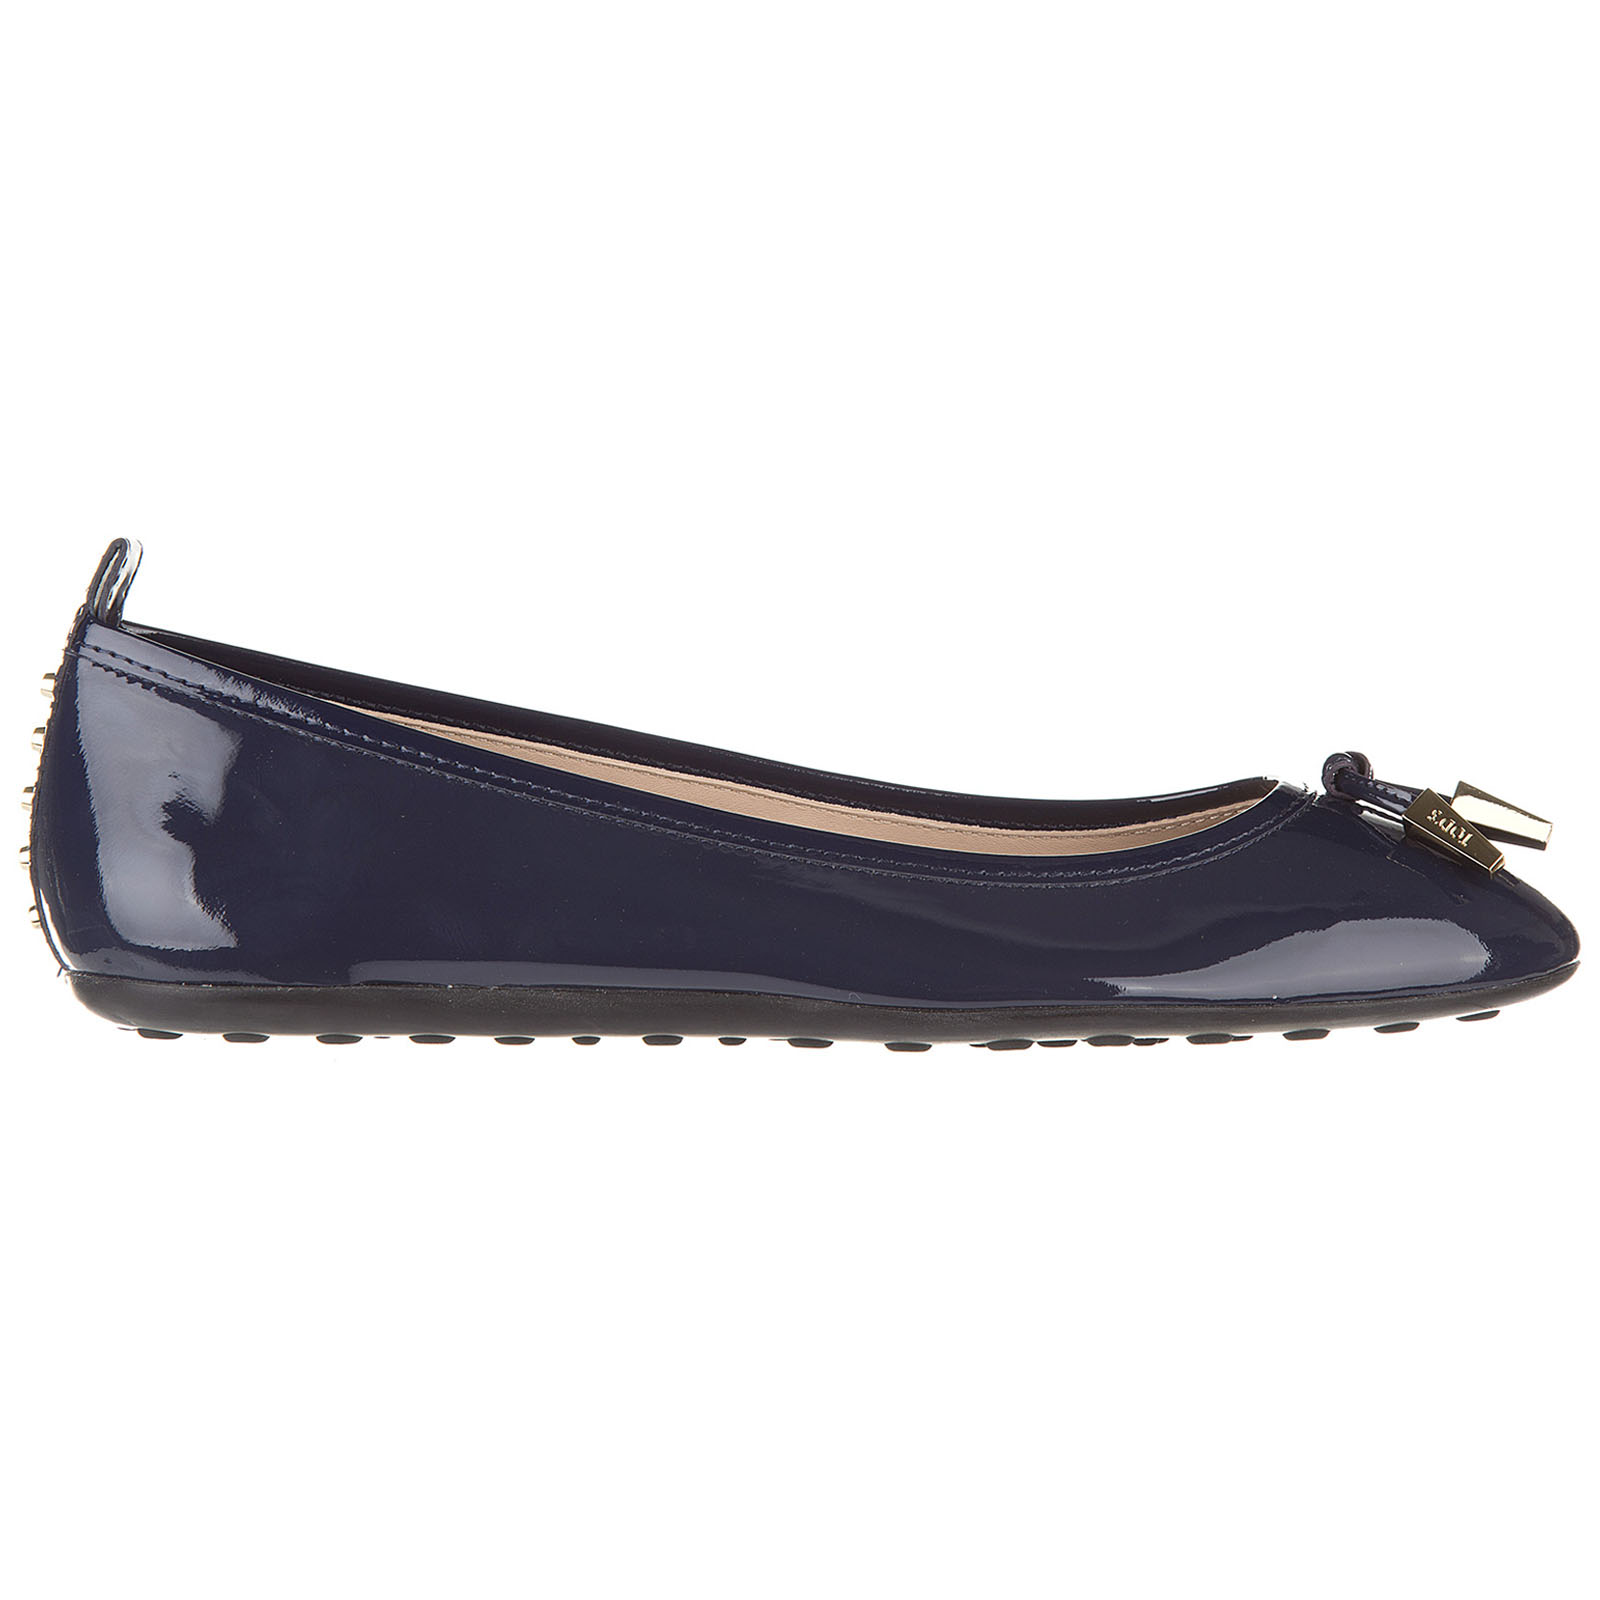 Damen leather ballet flats ballerinas